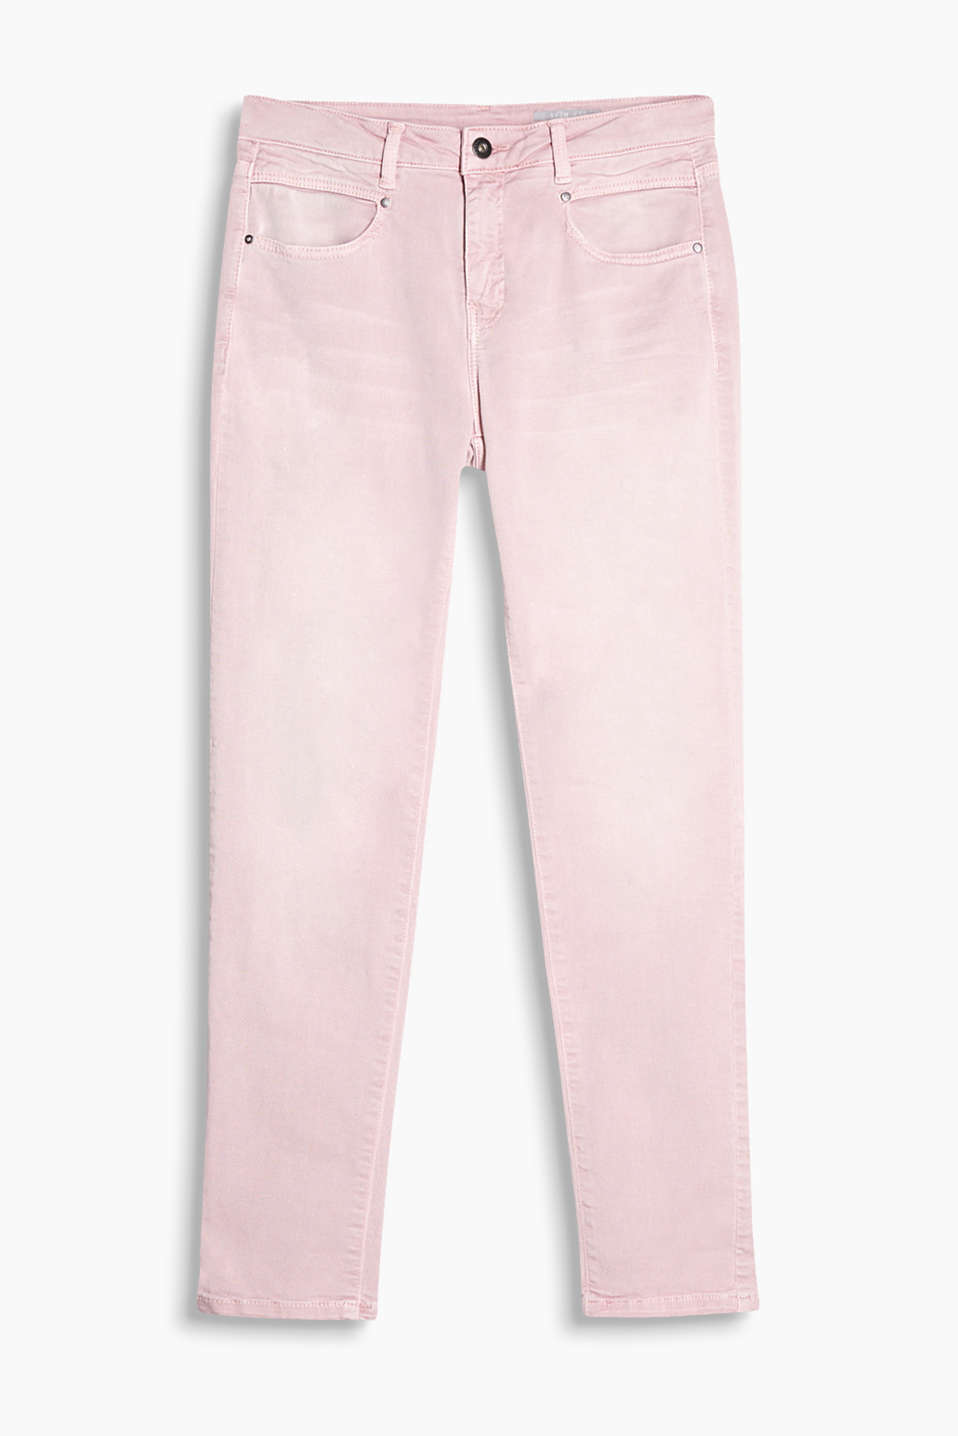 Light, trendily dyed stretch jeans with a vintage finish and modern pockets